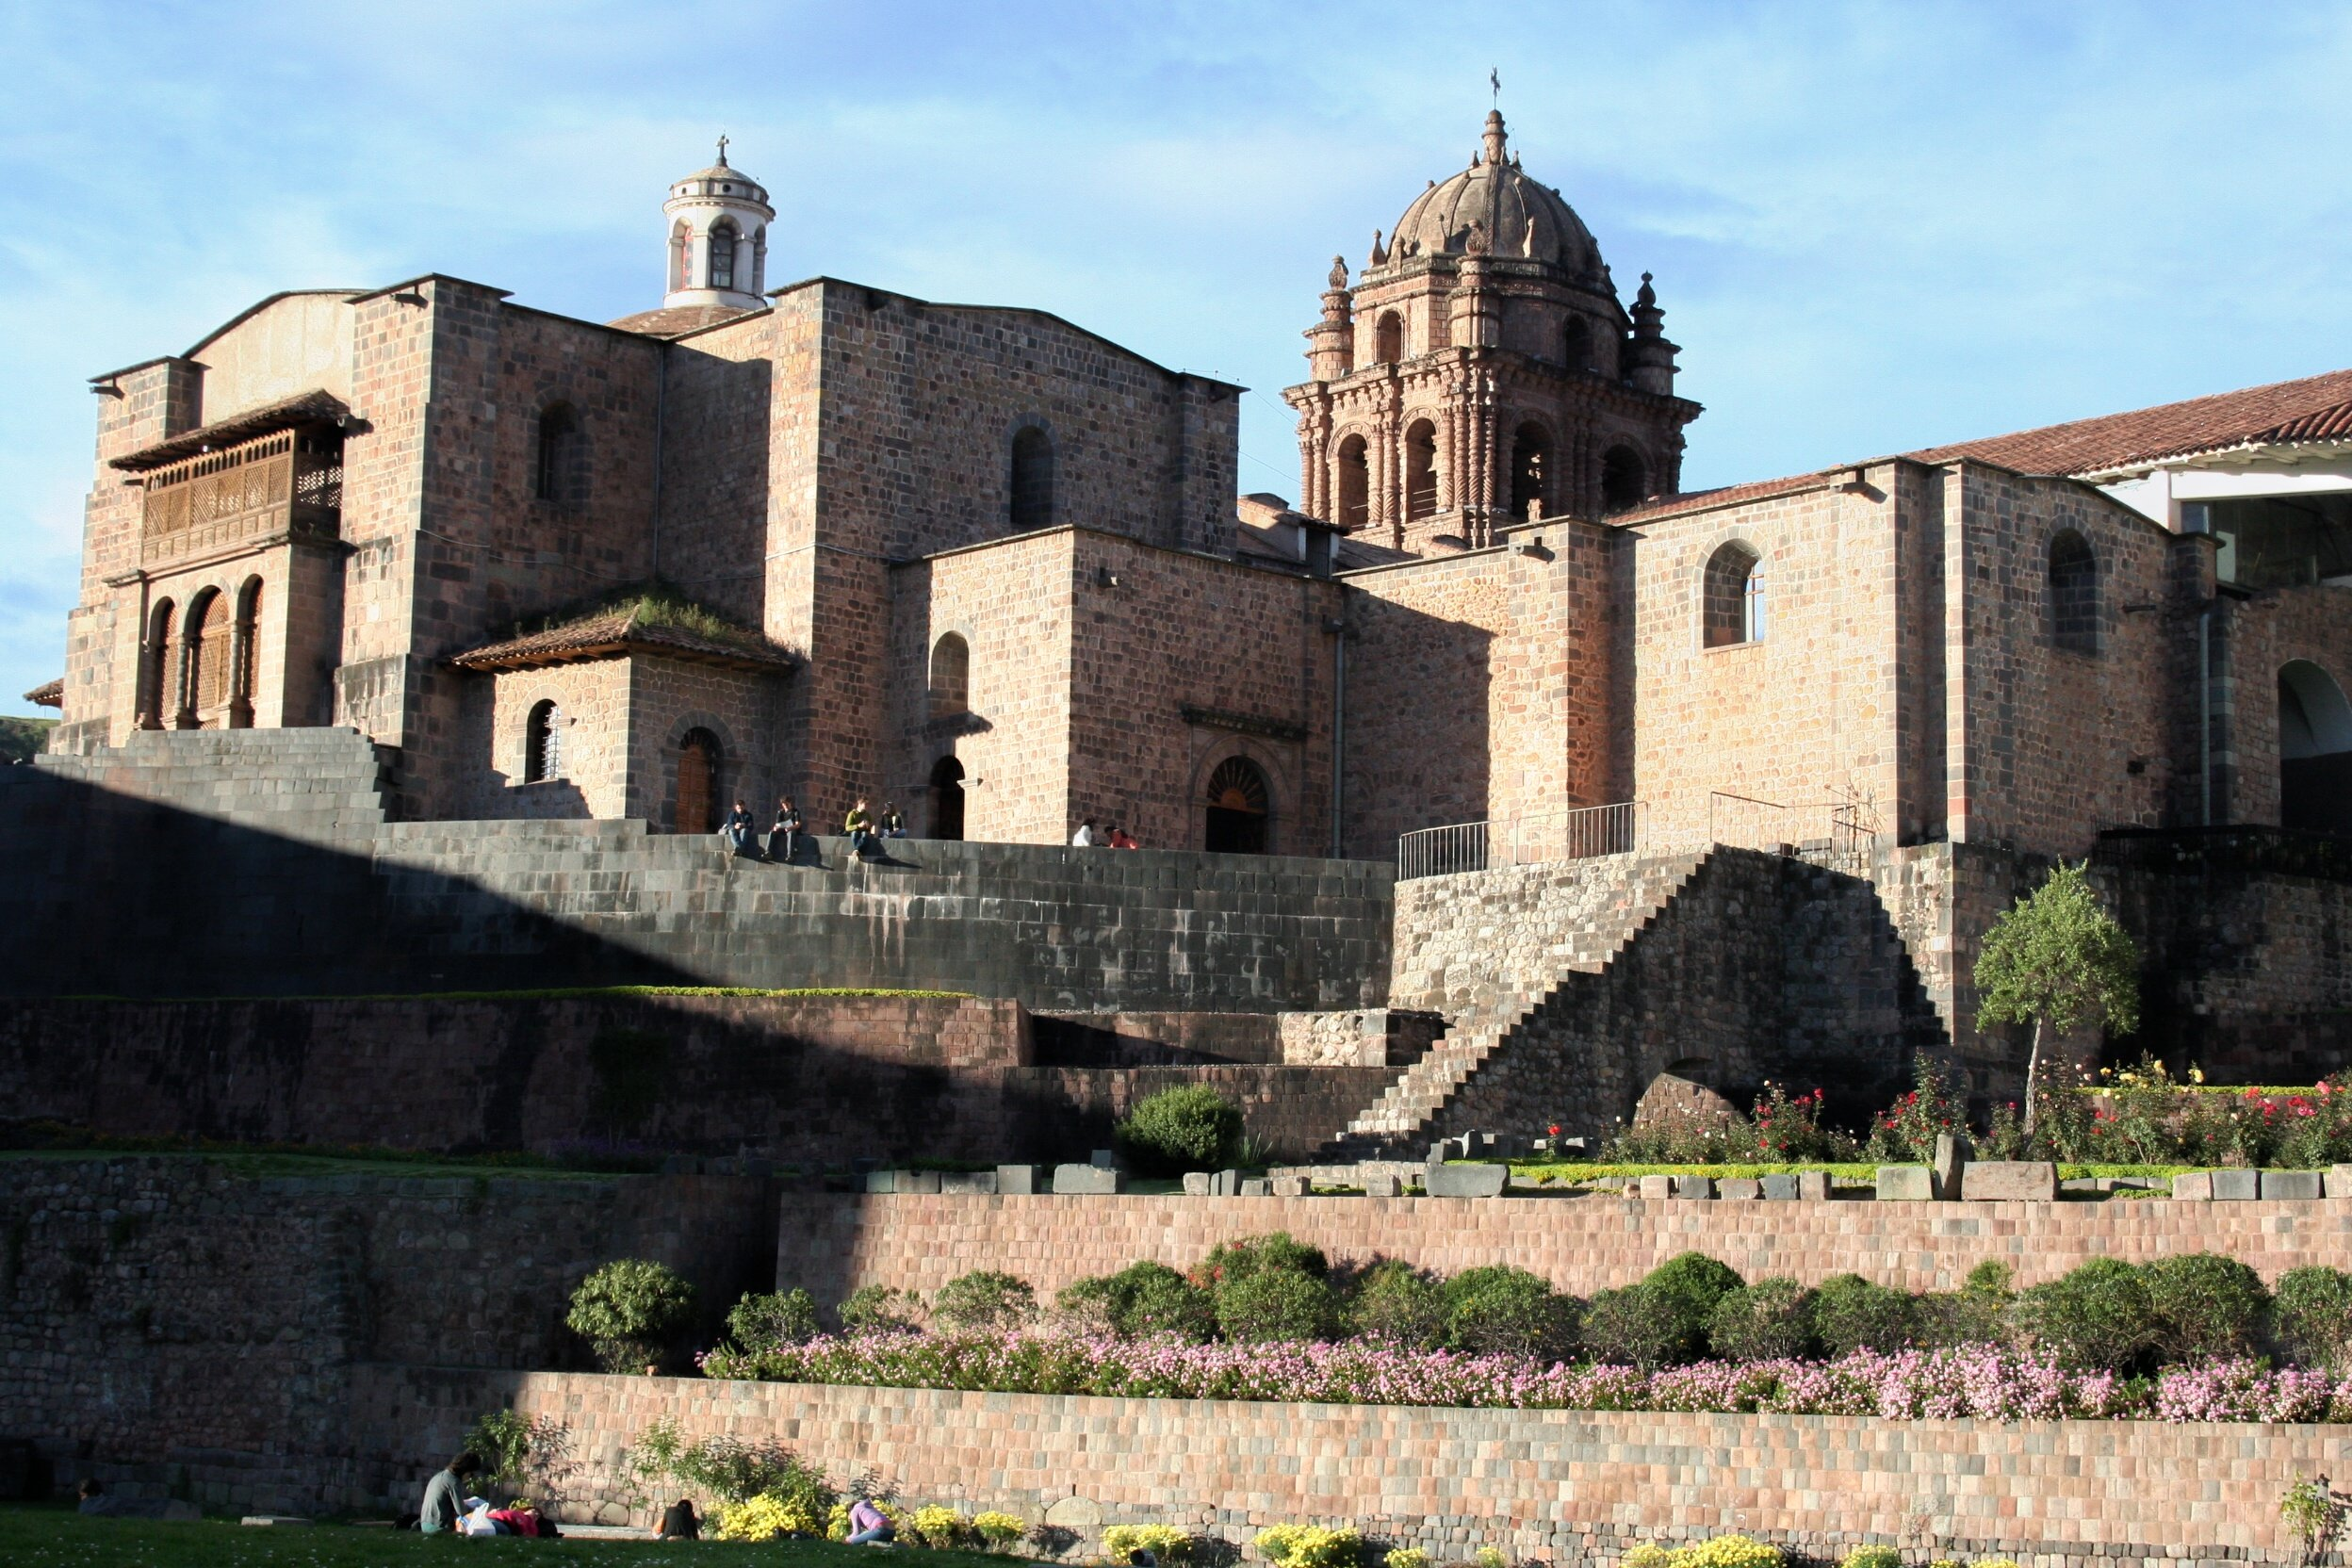 Qoricancha santo domingo church in cusco peru on the walking tour